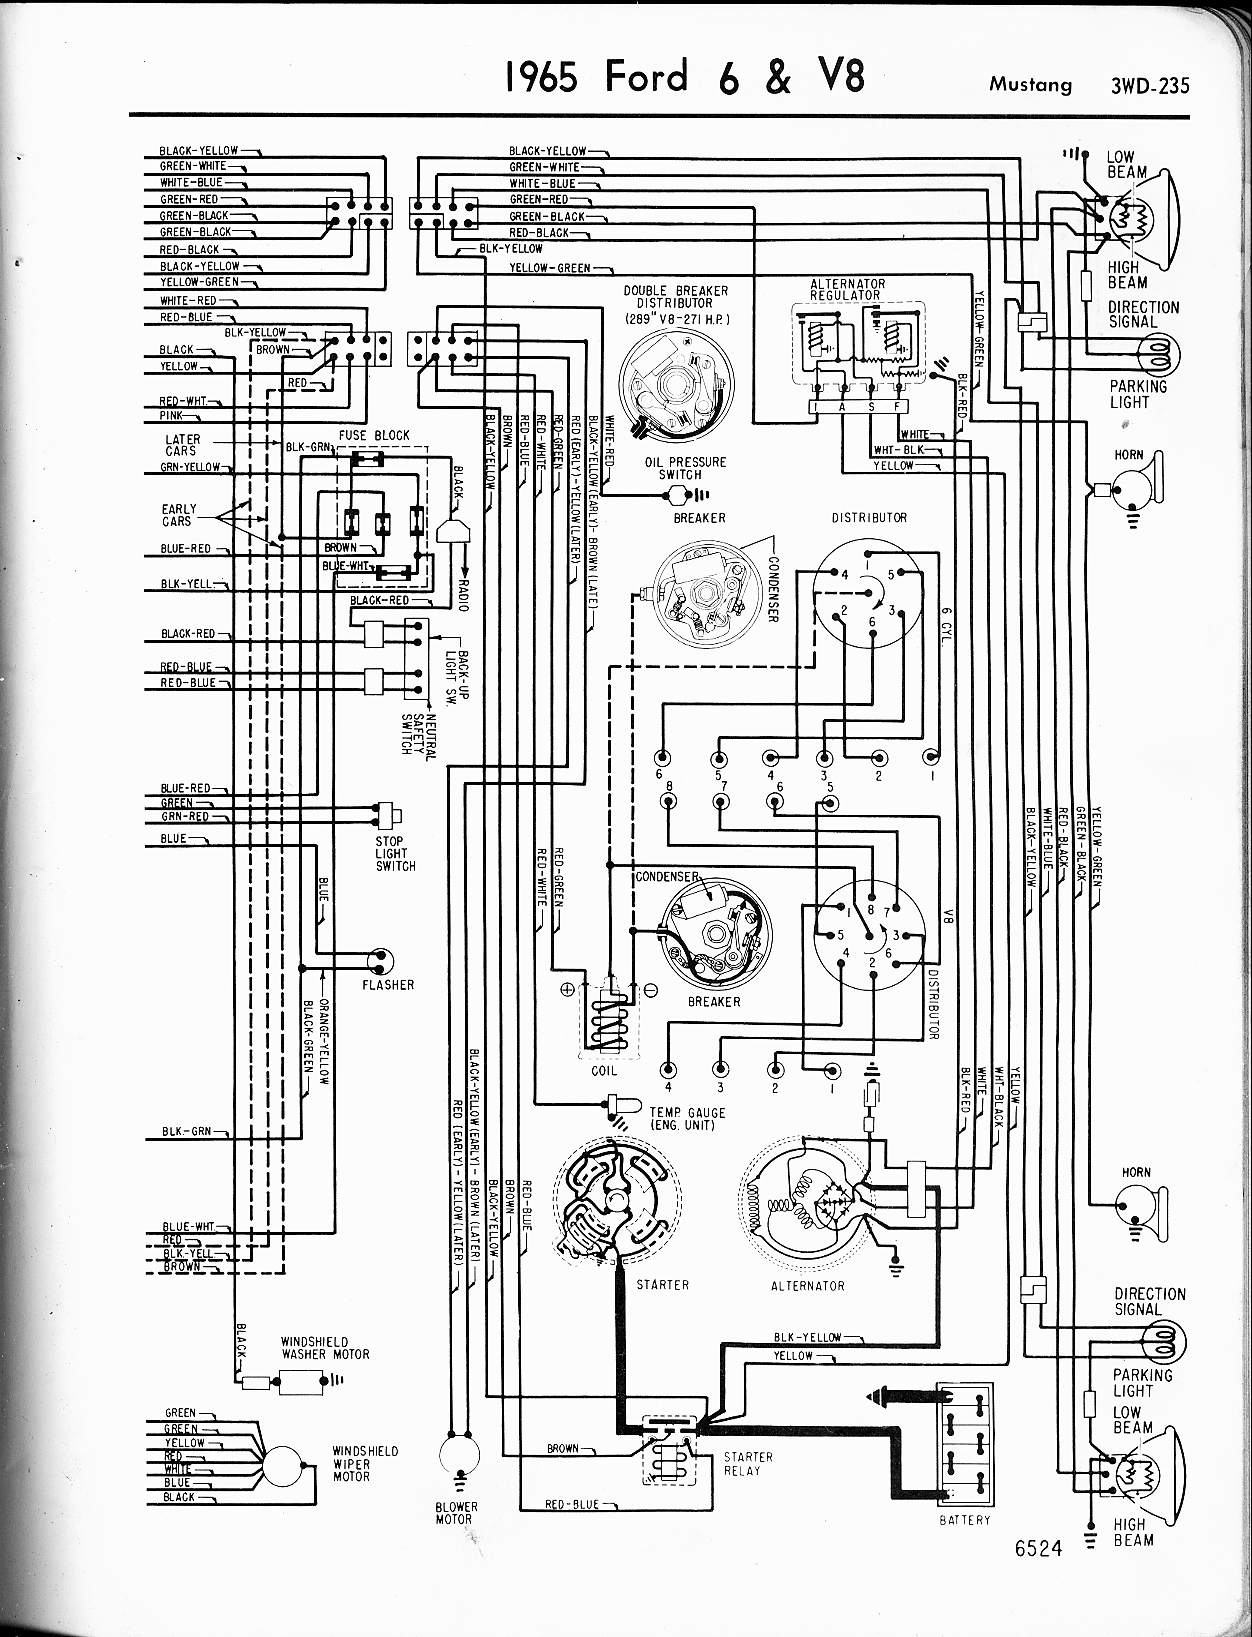 Ford Diagrams Voltage Regulator Wiring Diagram 1986 F 350 65 Mustang 2 Drawing B